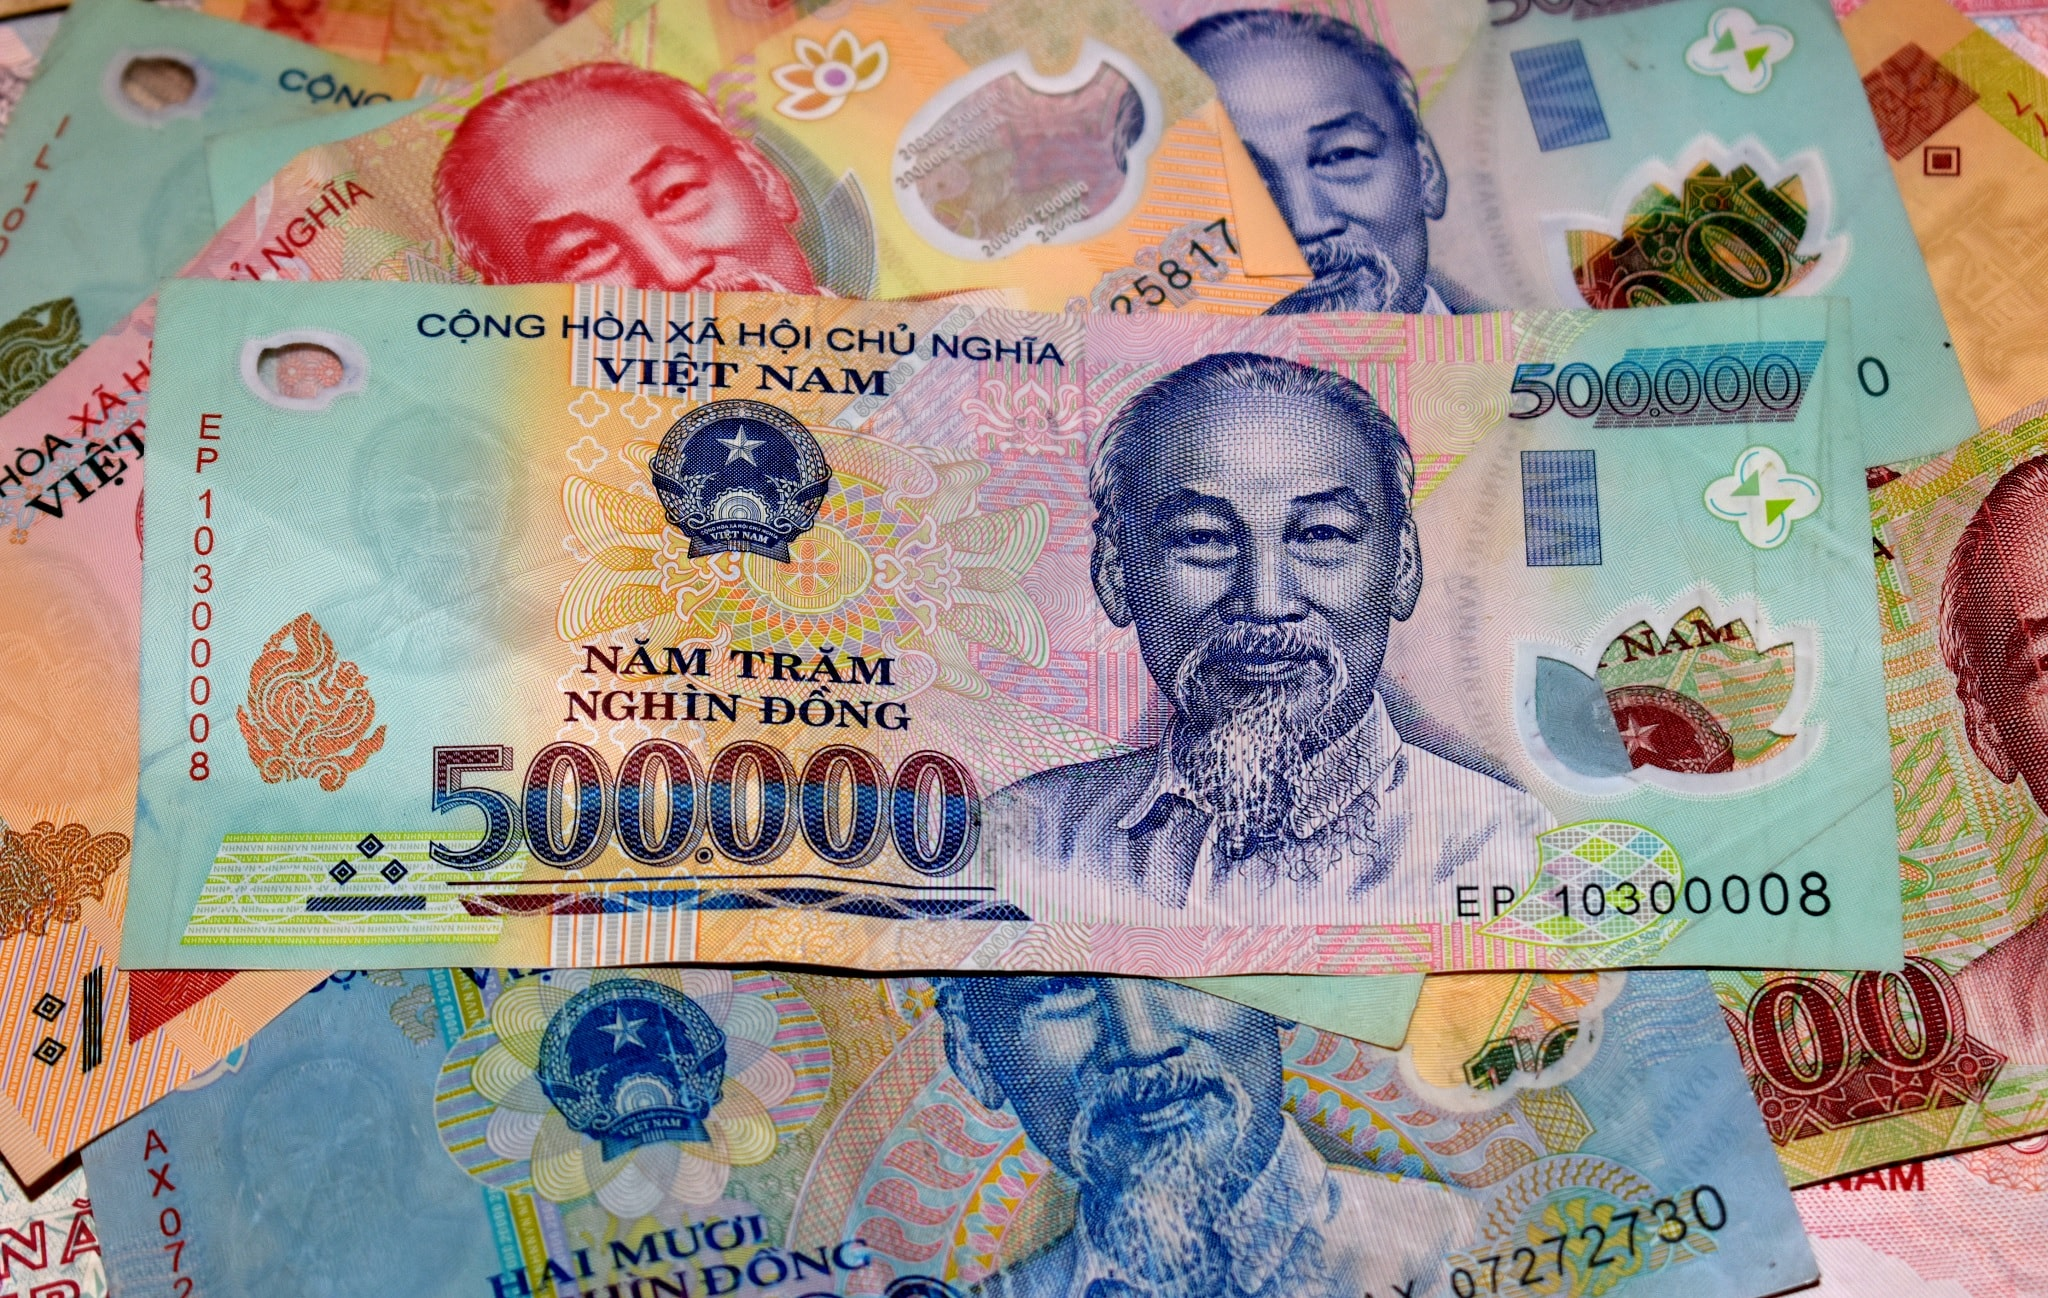 Vnd Explaining Vietnam S Currency